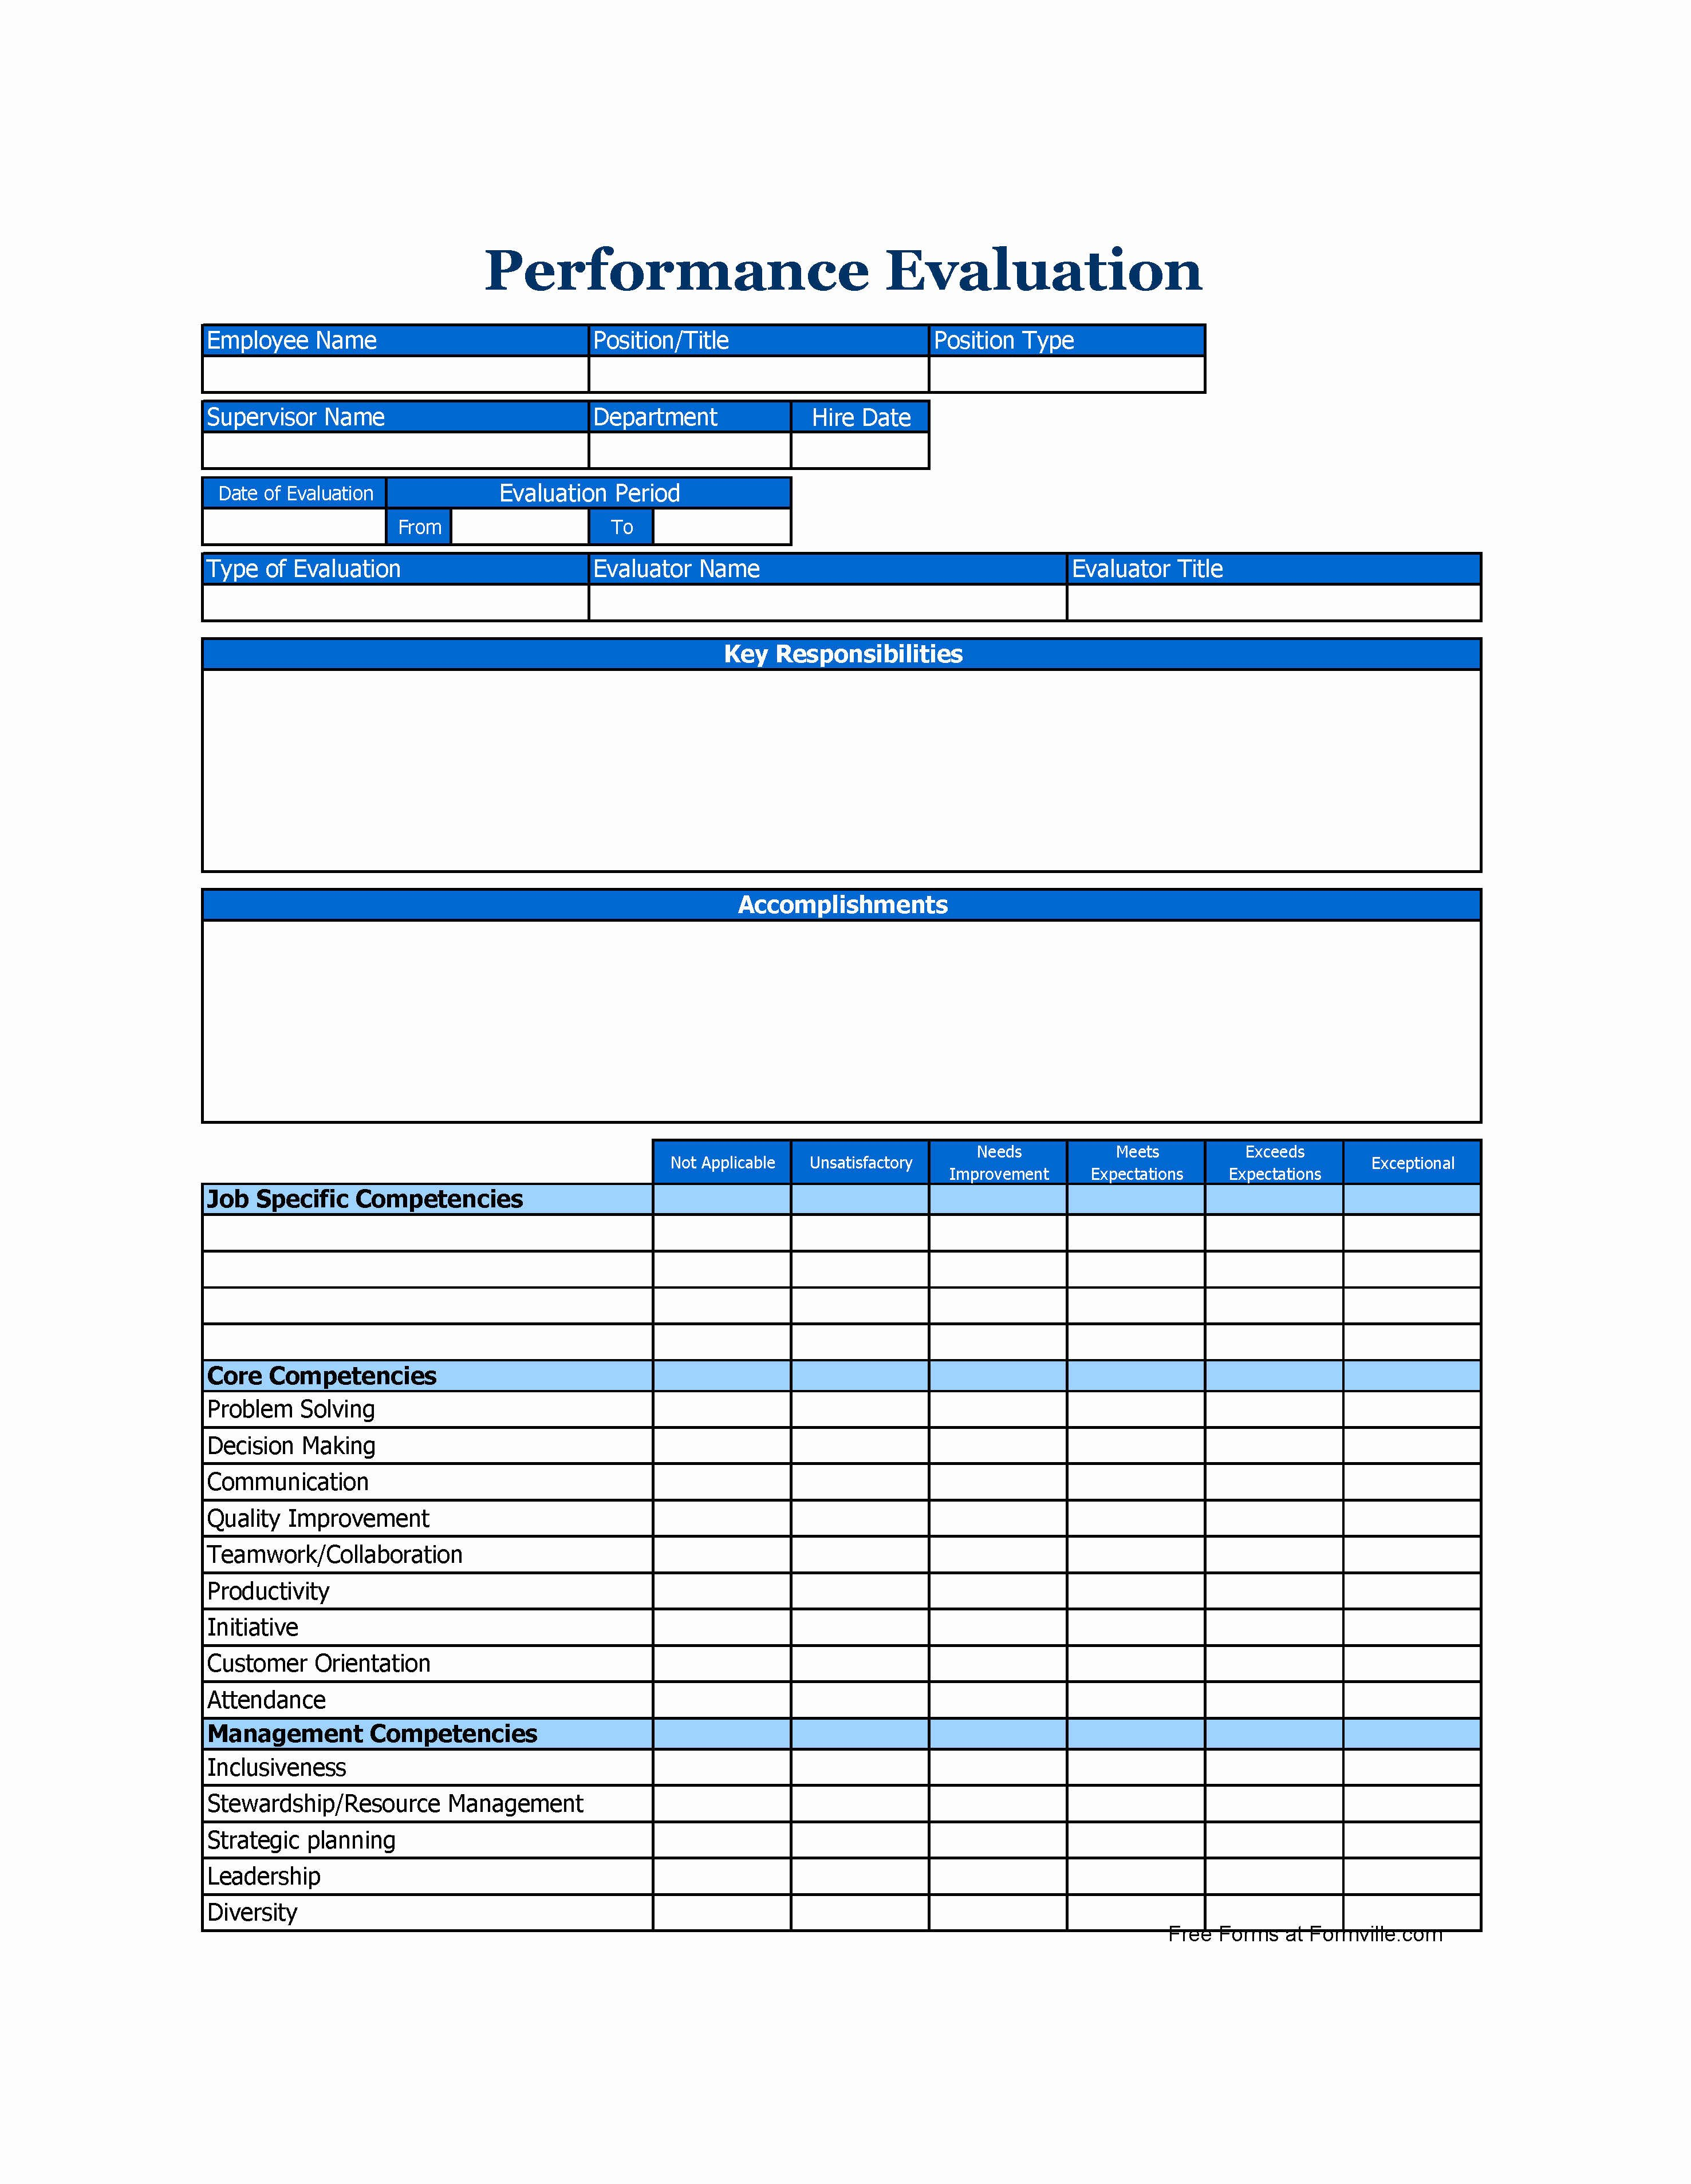 Performance Evaluation form Template Luxury 46 Employee Evaluation forms & Performance Review Examples